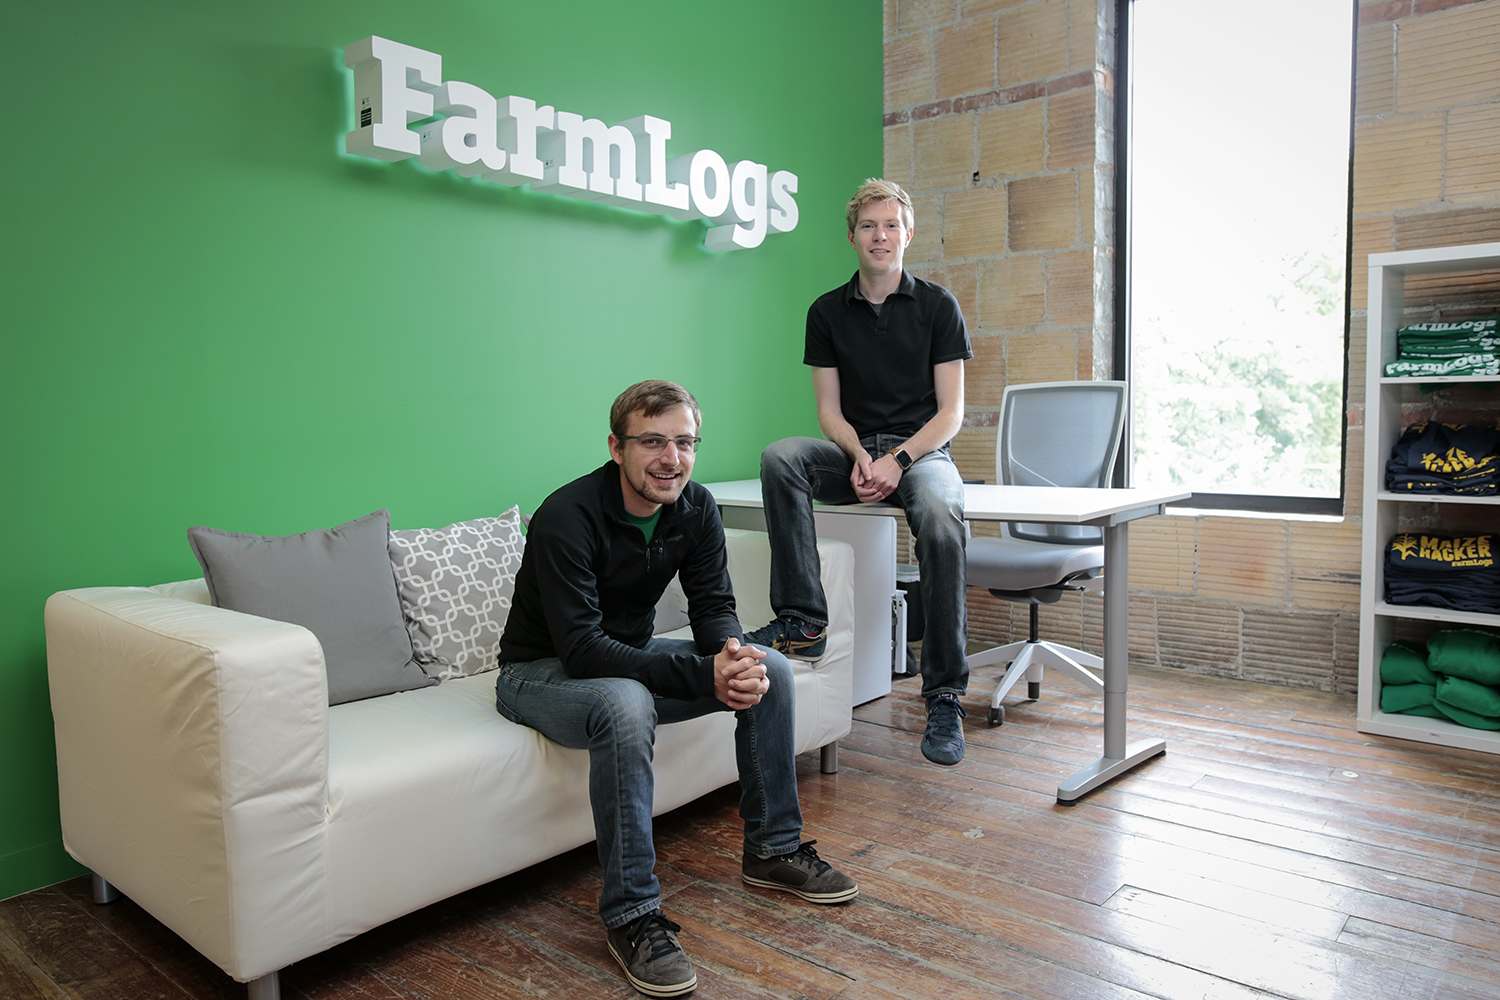 Brad Koch, left, and Jesse Vollmar, co-founders of FarmLogs have their photo taken on Monday, June 22, 2015 at FarmLogs in Ann Arbor, MI. Tim Galloway for the New York Times